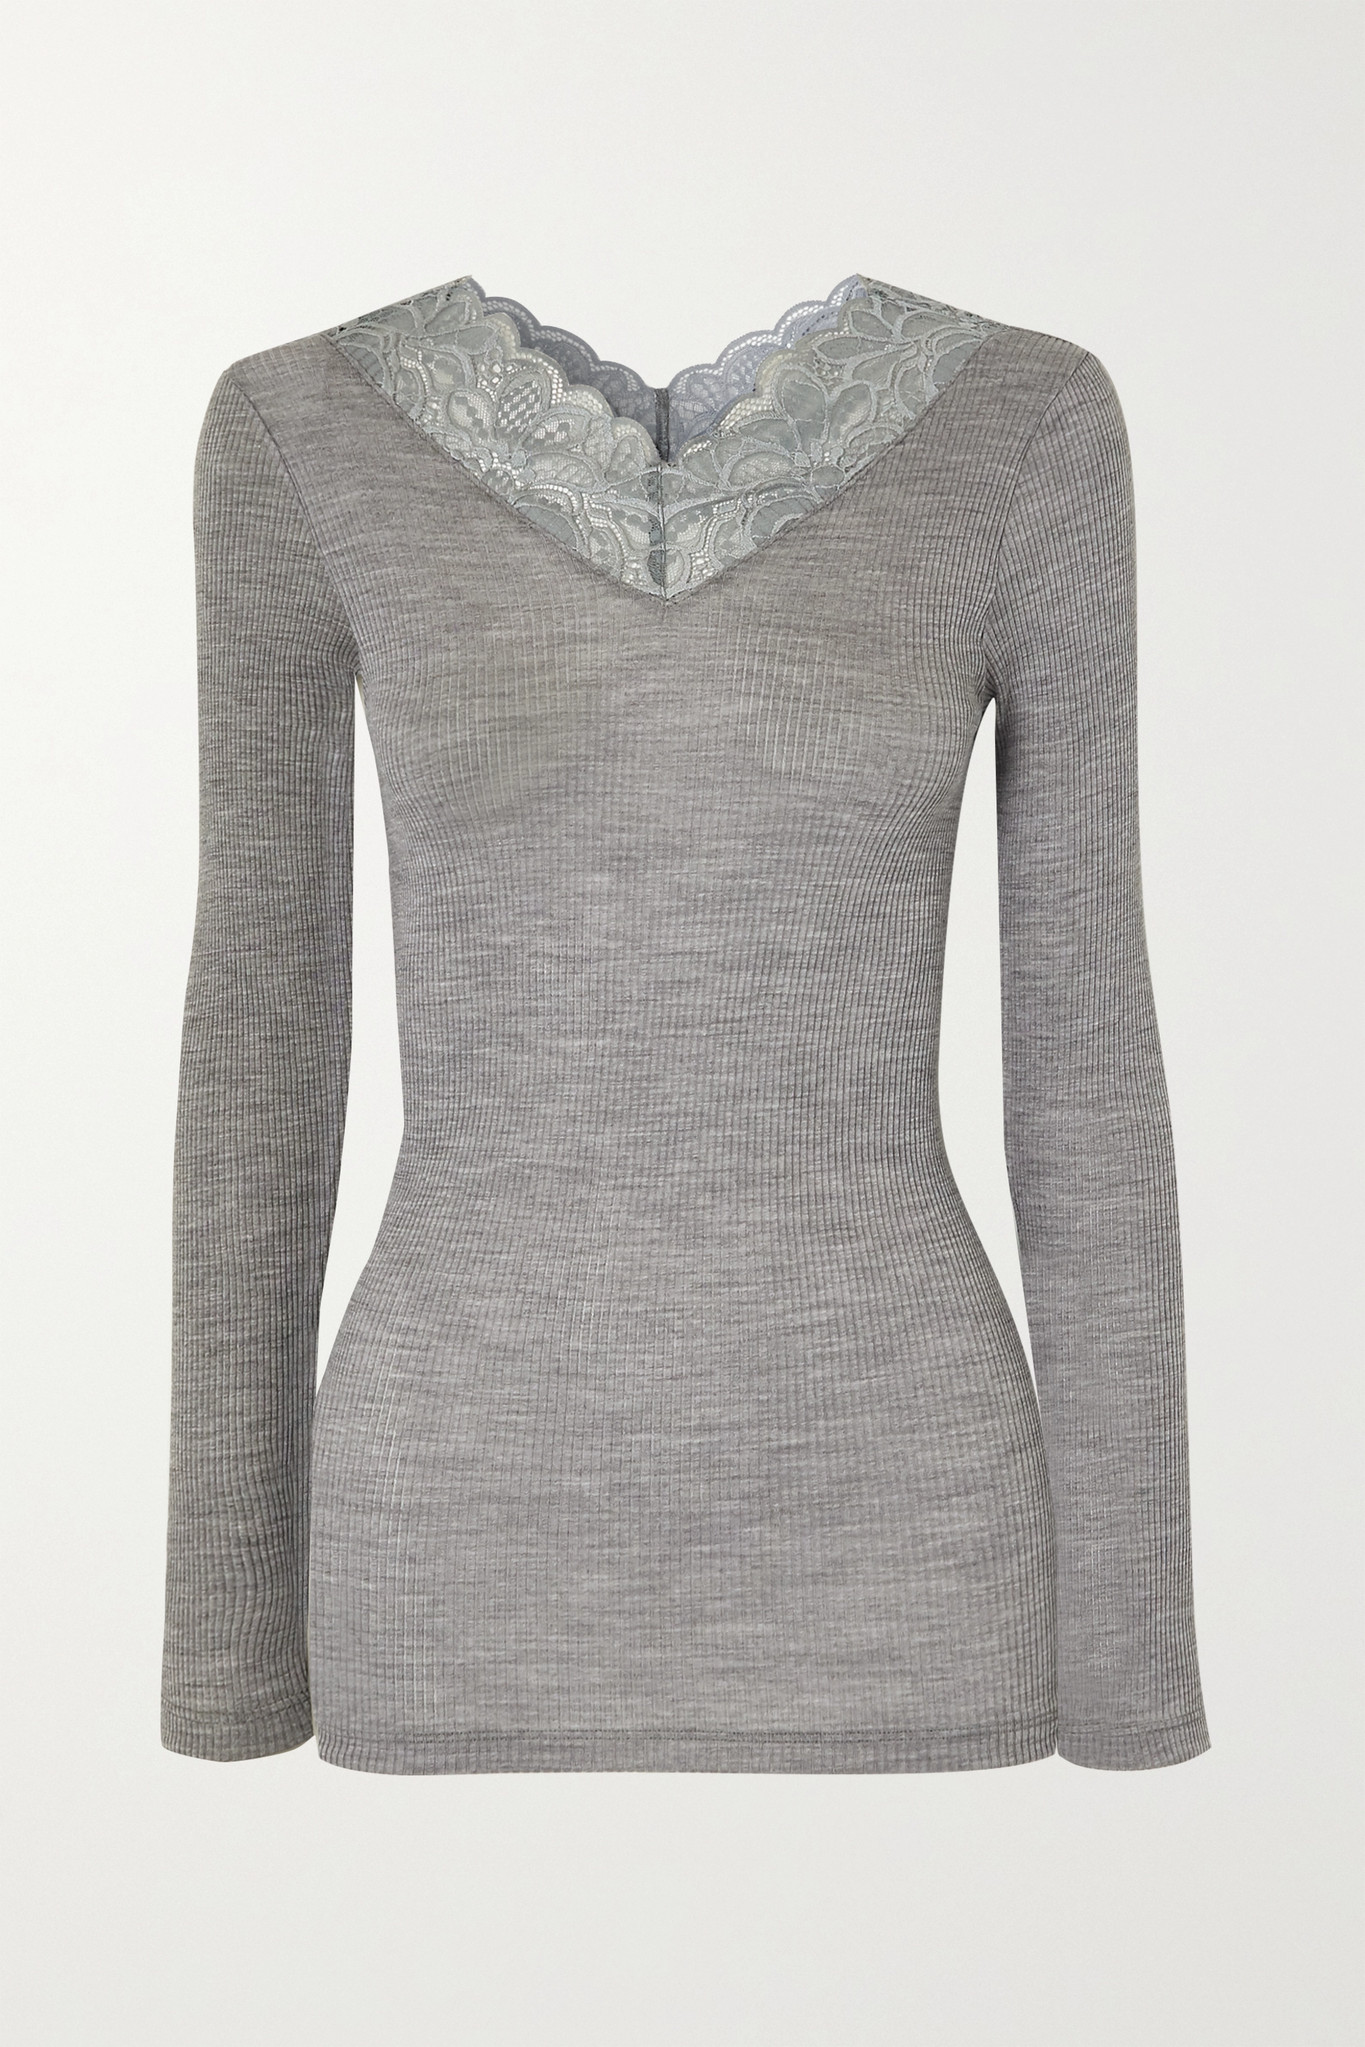 HANRO - Karla Lace-trimmed Wool And Silk-blend Top - Gray - large